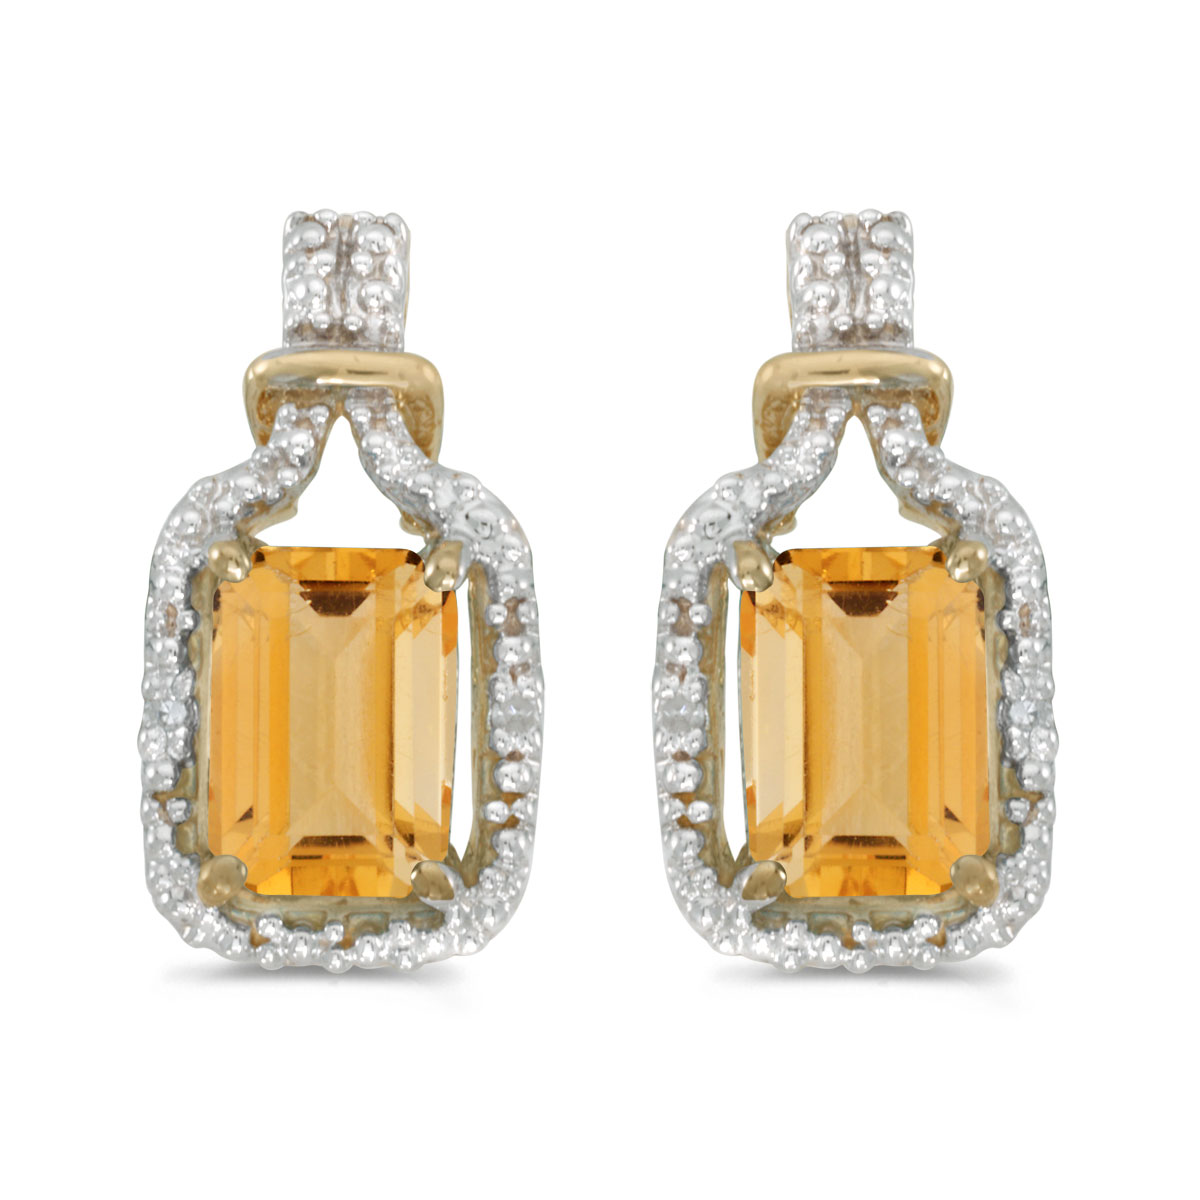 These 14k yellow gold emerald-cut citrine and diamond earrings feature 7x5 mm genuine natural cit...